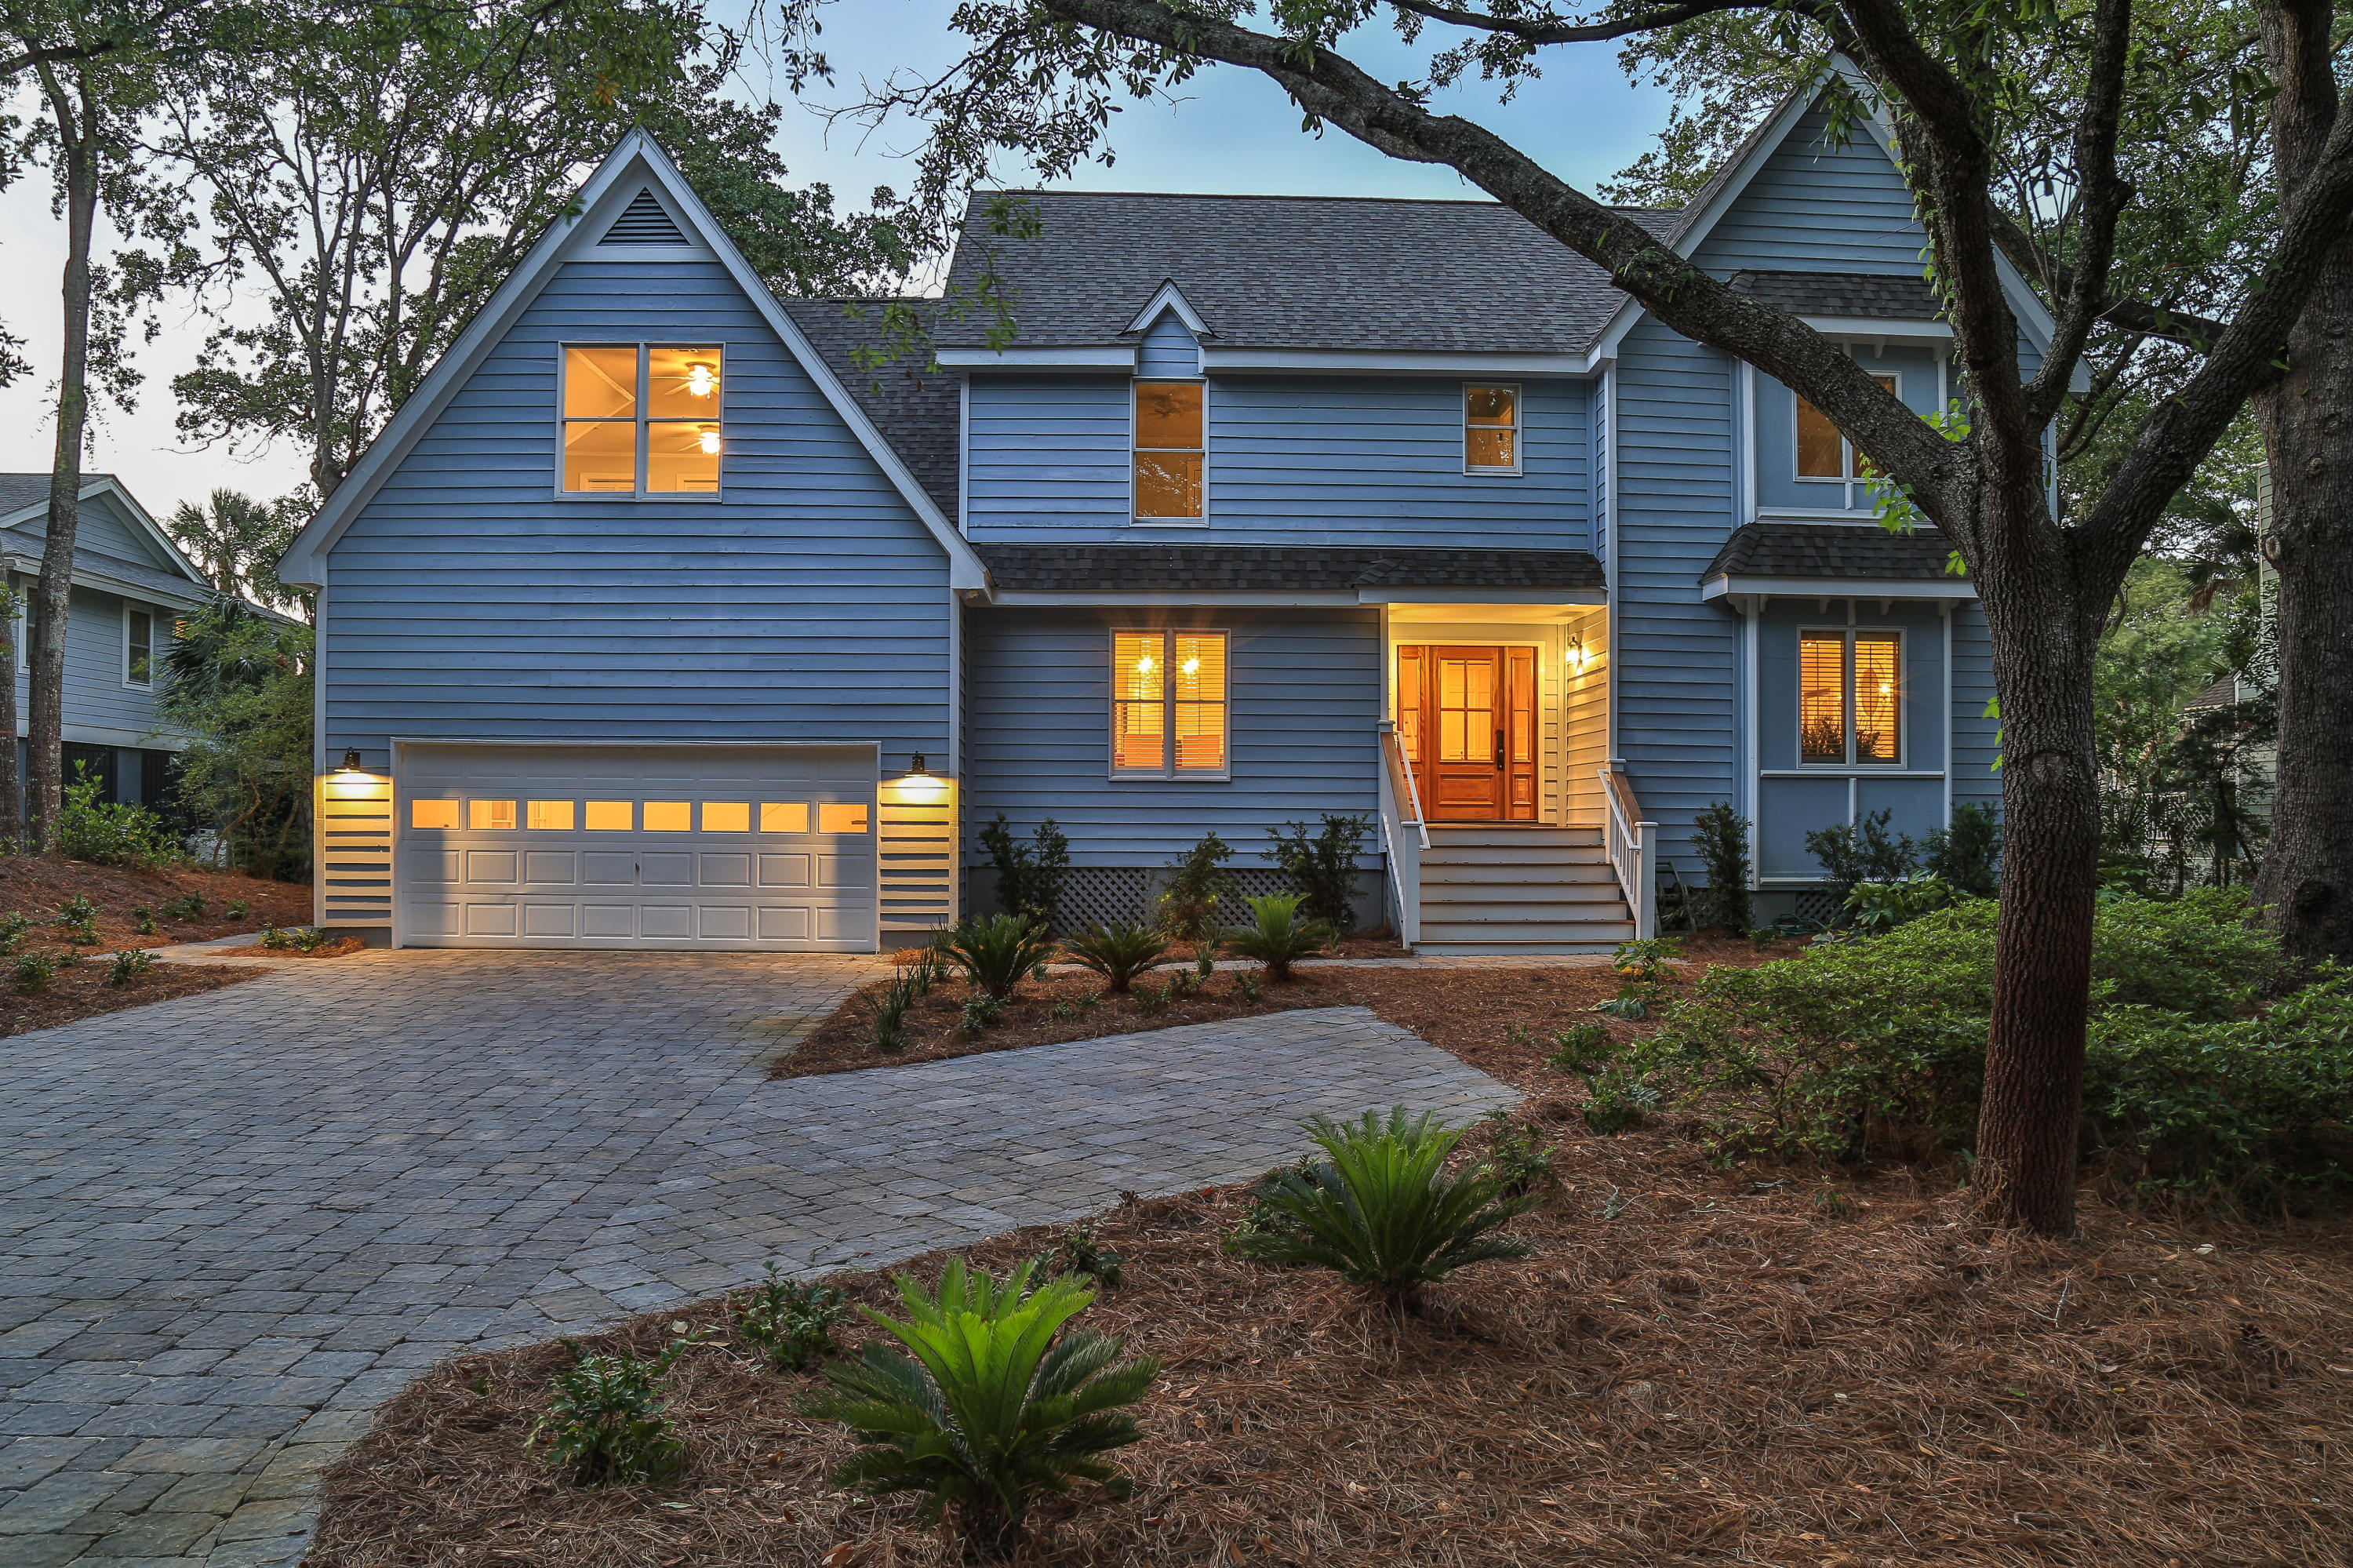 Photo of 20 Oyster Row, Isle of Palms, SC 29451